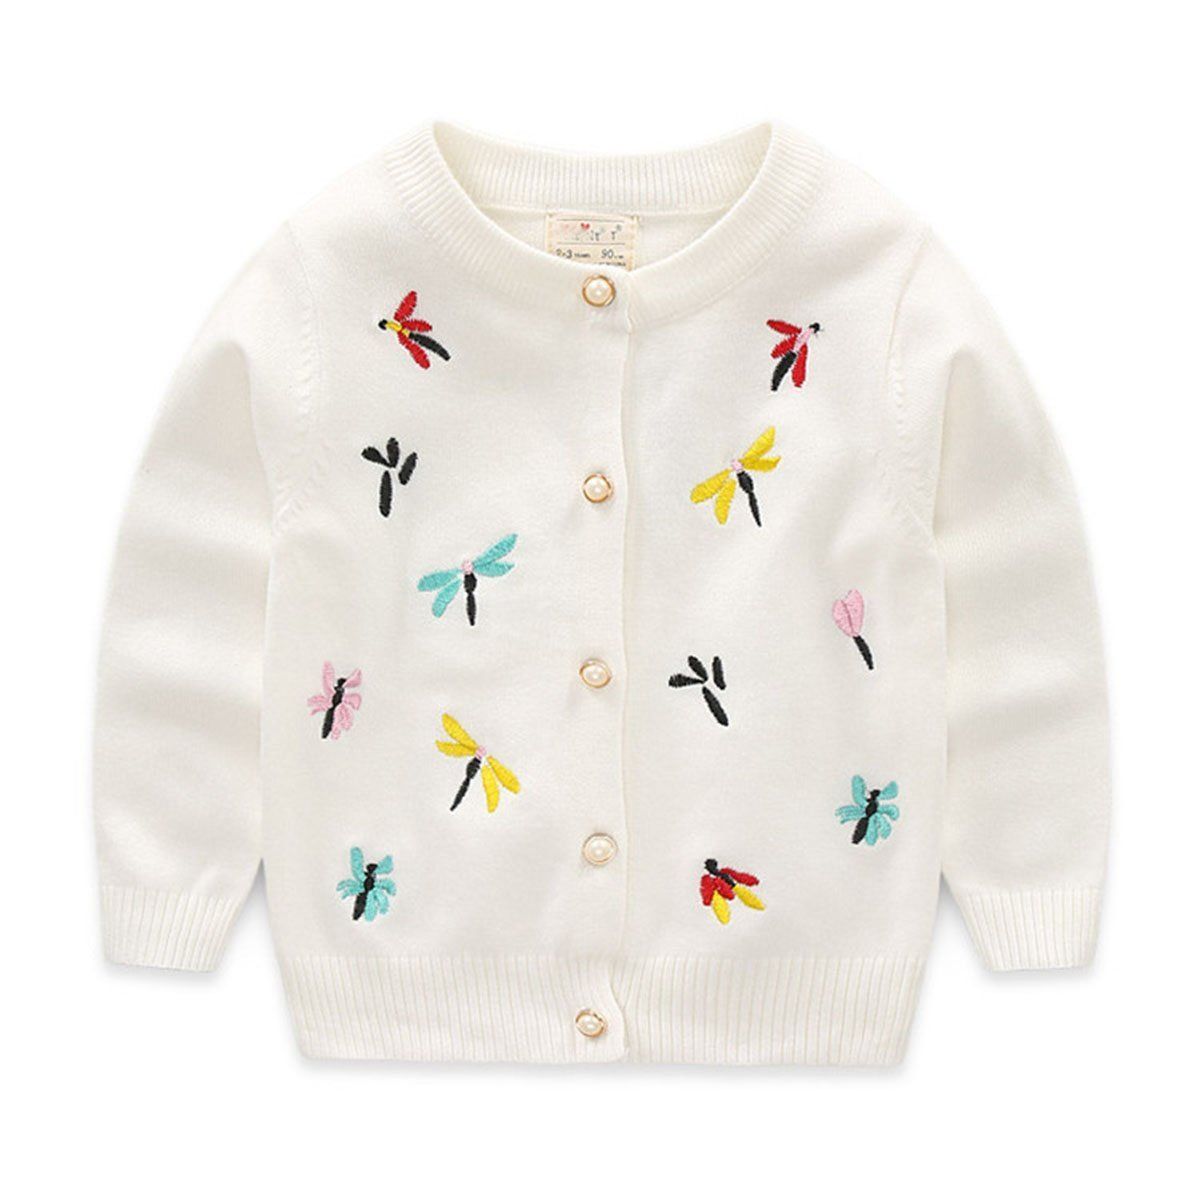 TAIYCYXGAN Baby Little Girls Princess Cardigan Knit Sweaters Kids Dragonfly Cotton Sweater Jacket Button-Down White 110